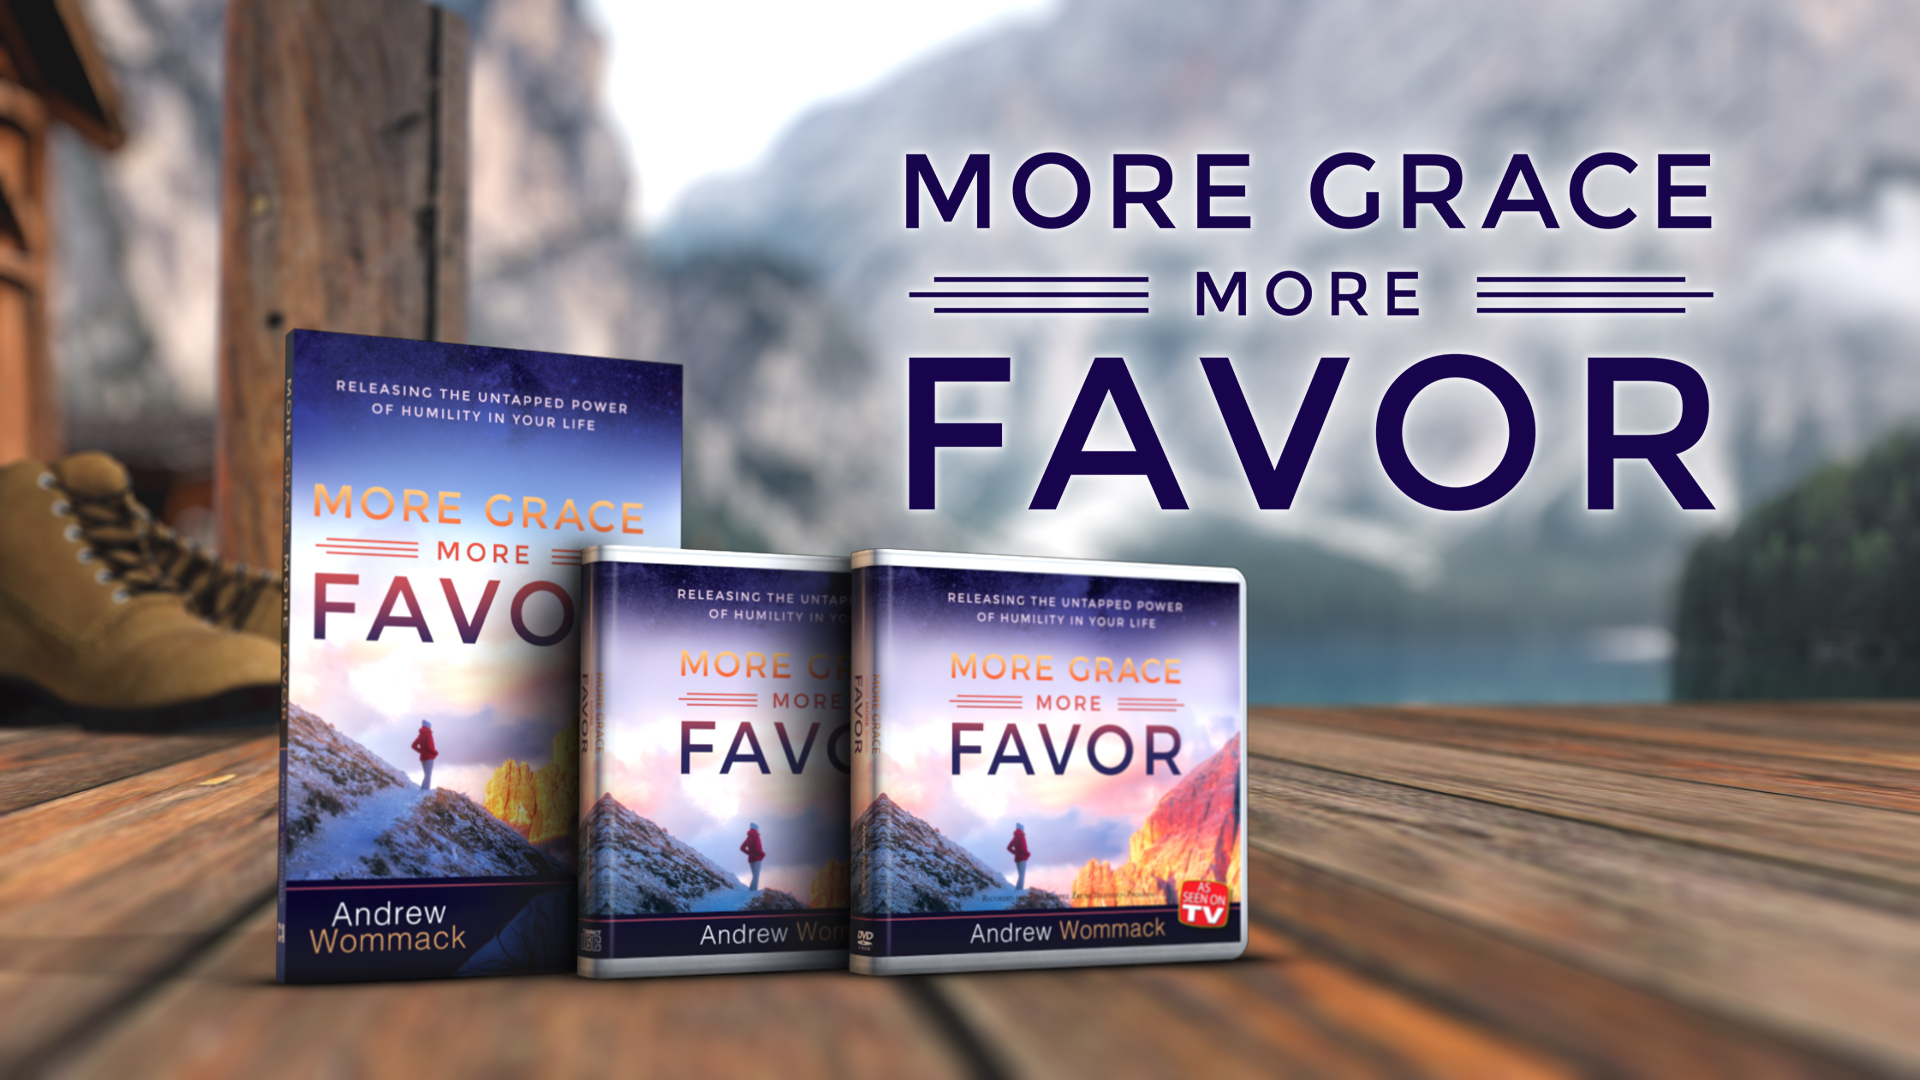 More Grace More Favor Banner